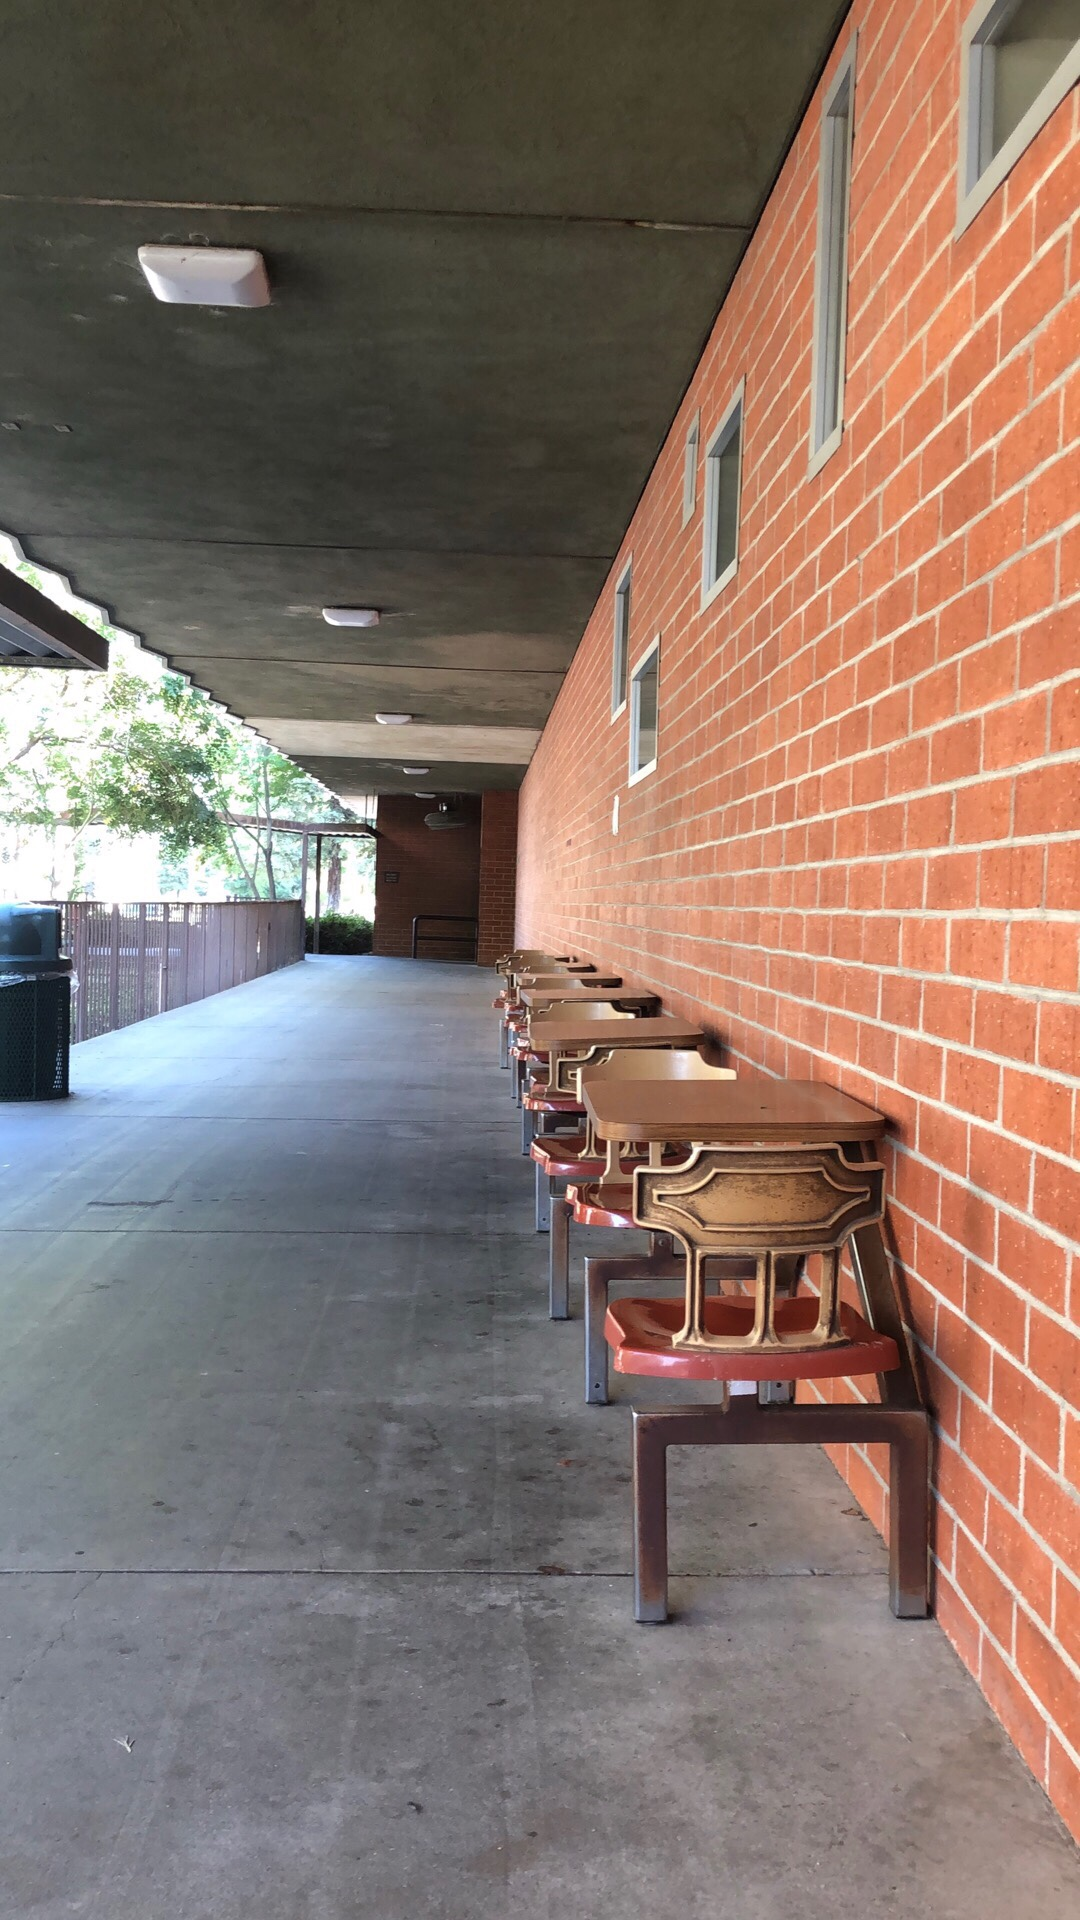 Exterior of the San Joaquin General Hospital cafeteria. Tables and chairs lined up against a brick wall.